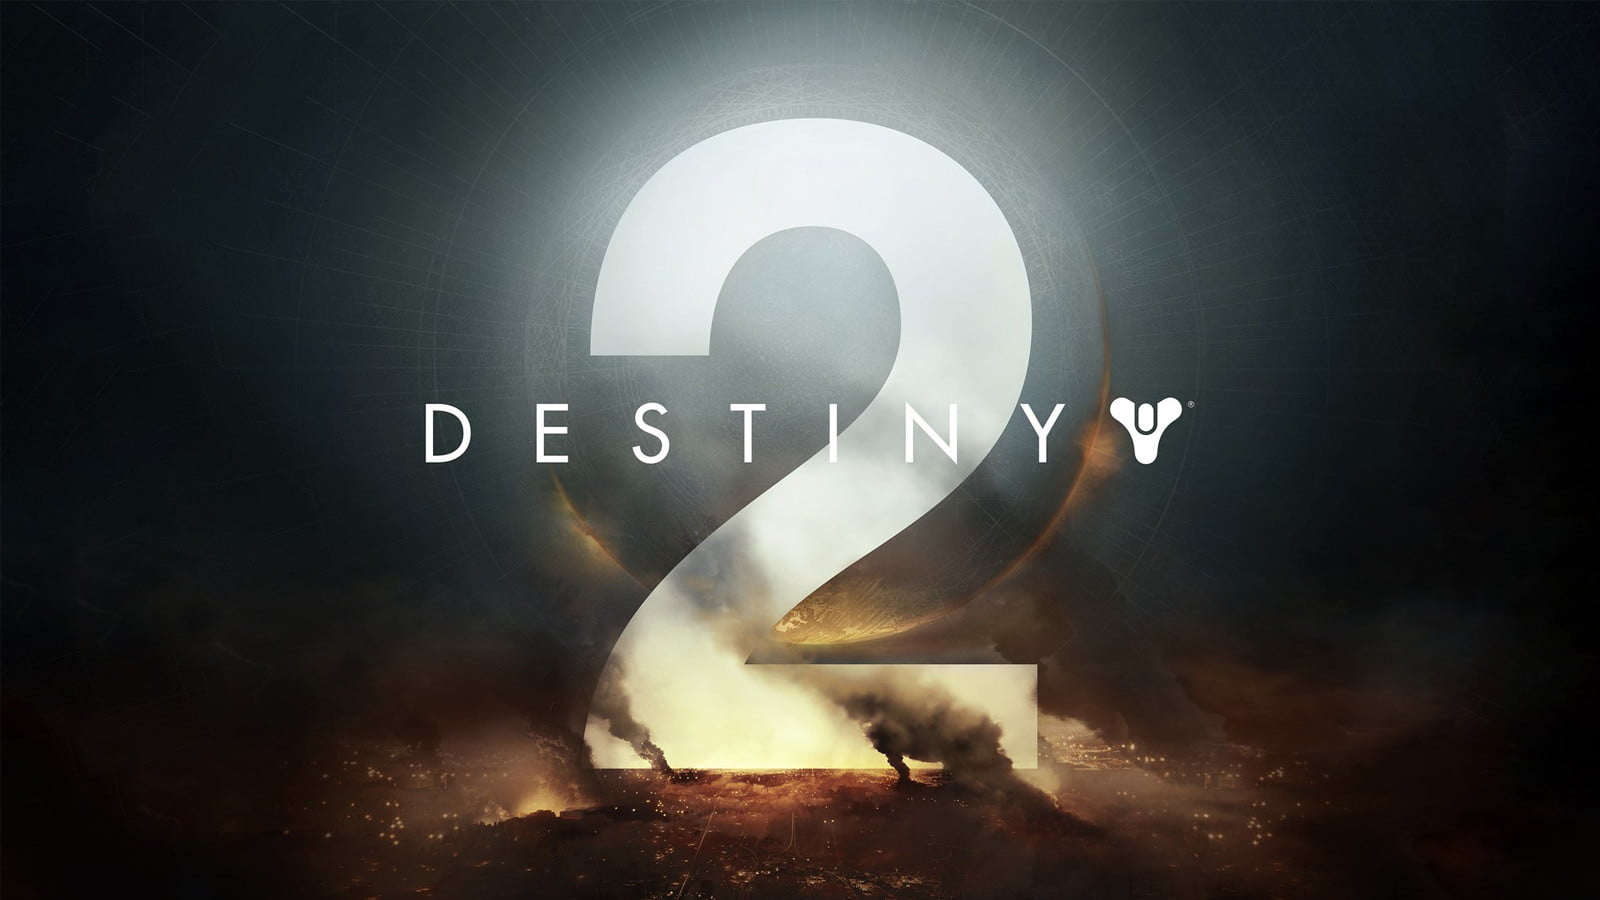 Bungie confirms 'Destiny 2' is to be the Destiny sequel's official name